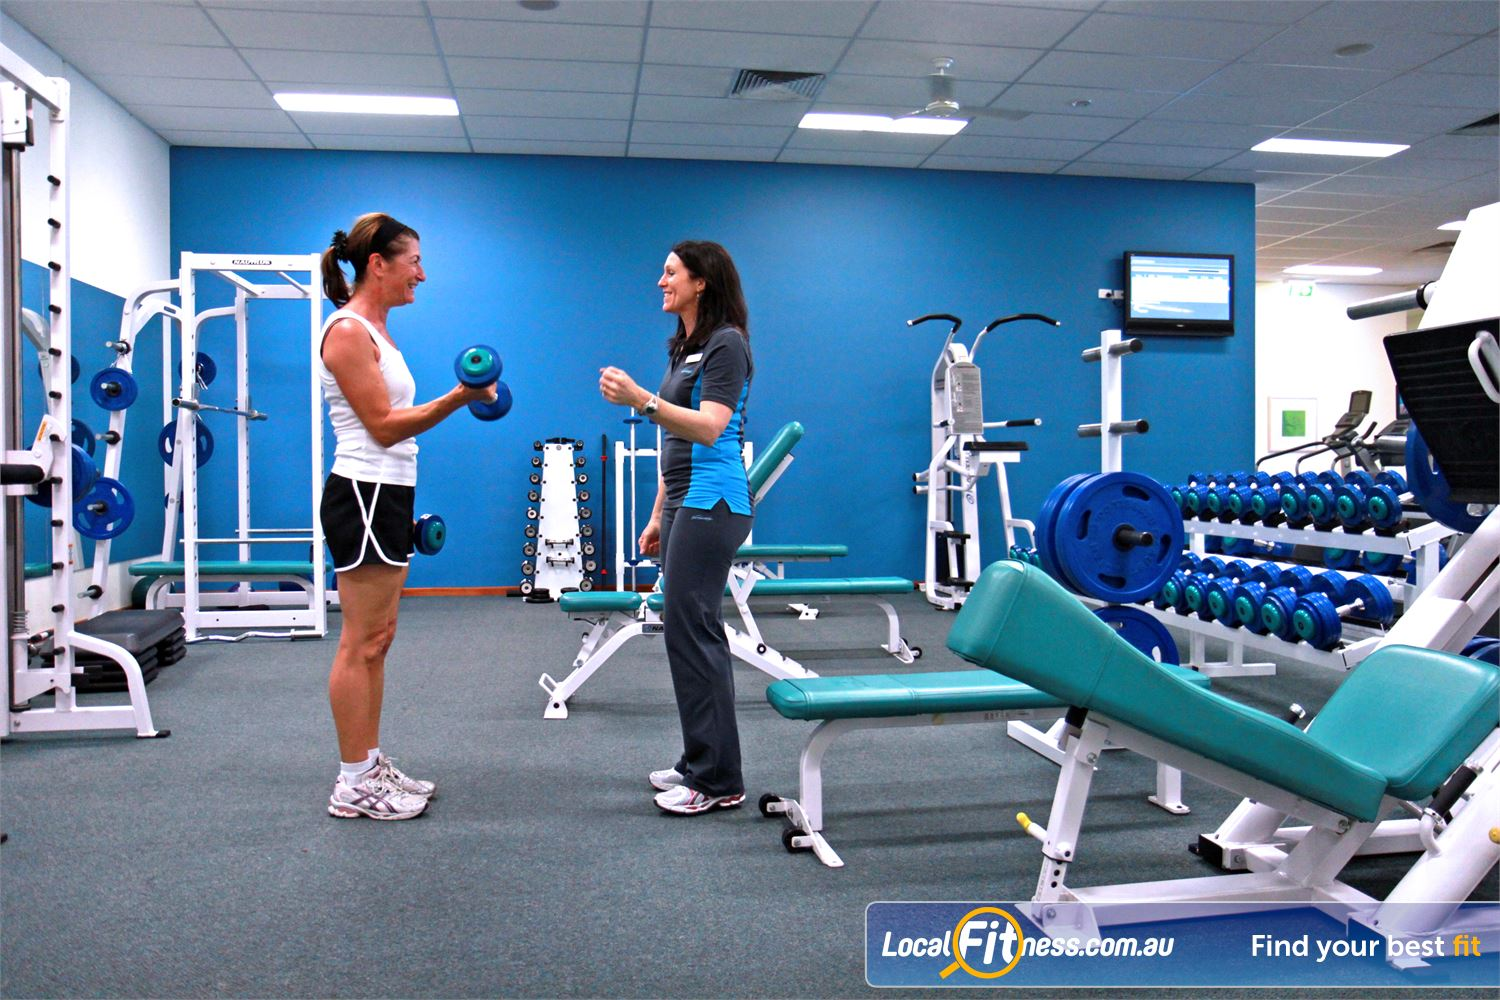 Fernwood Fitness Near Ceres Our Waurn Ponds women's gym strength training programs allow you to progress.